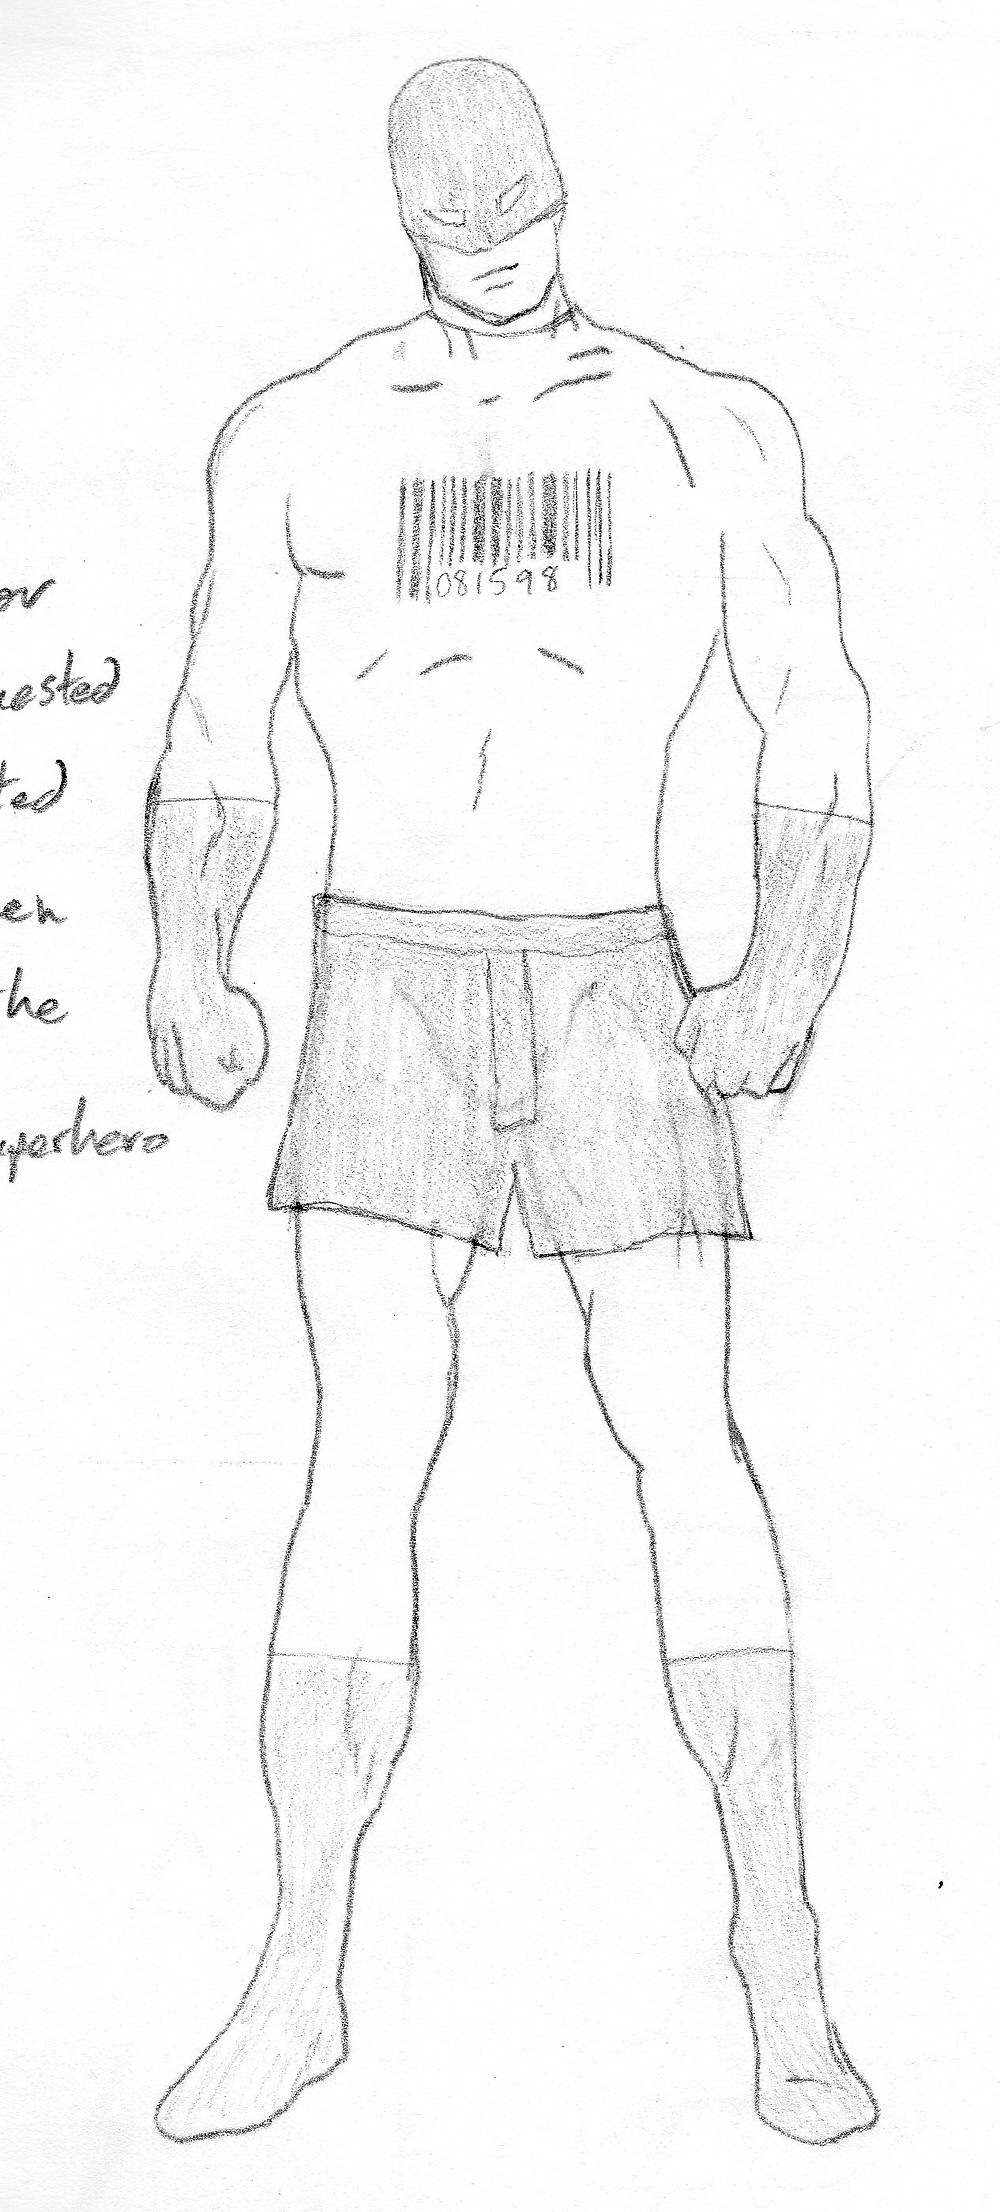 Early drawing of SuperGuy character in costume.  White suit with black gloves, boots and boxer shorts.